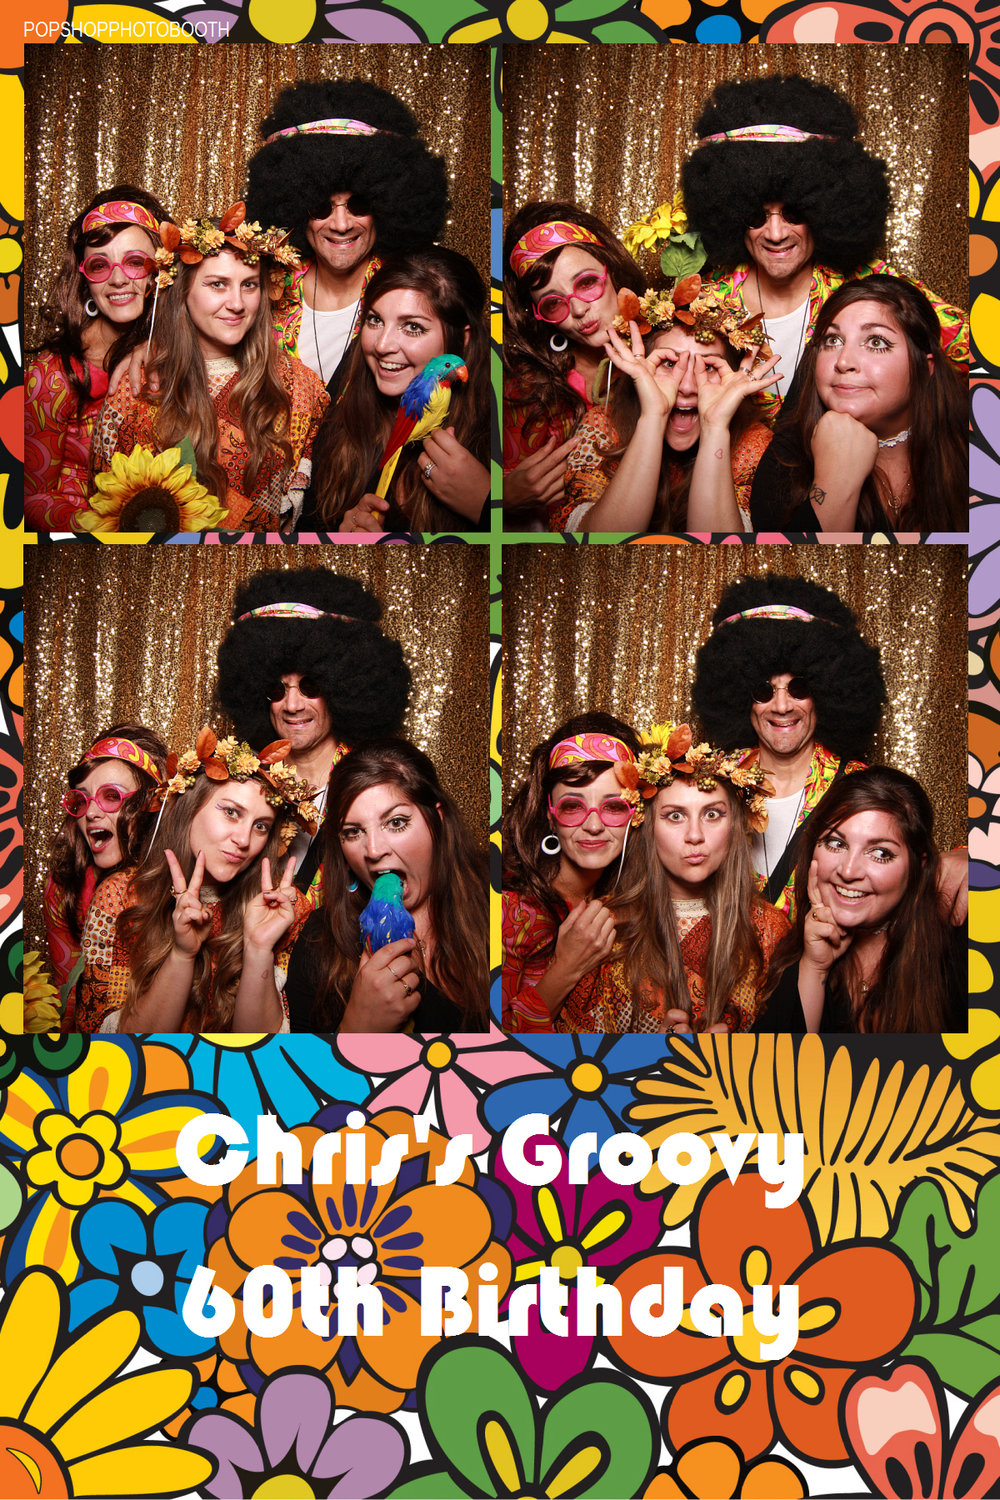 Chris's groovy 60th Birthday! October 22, 2016